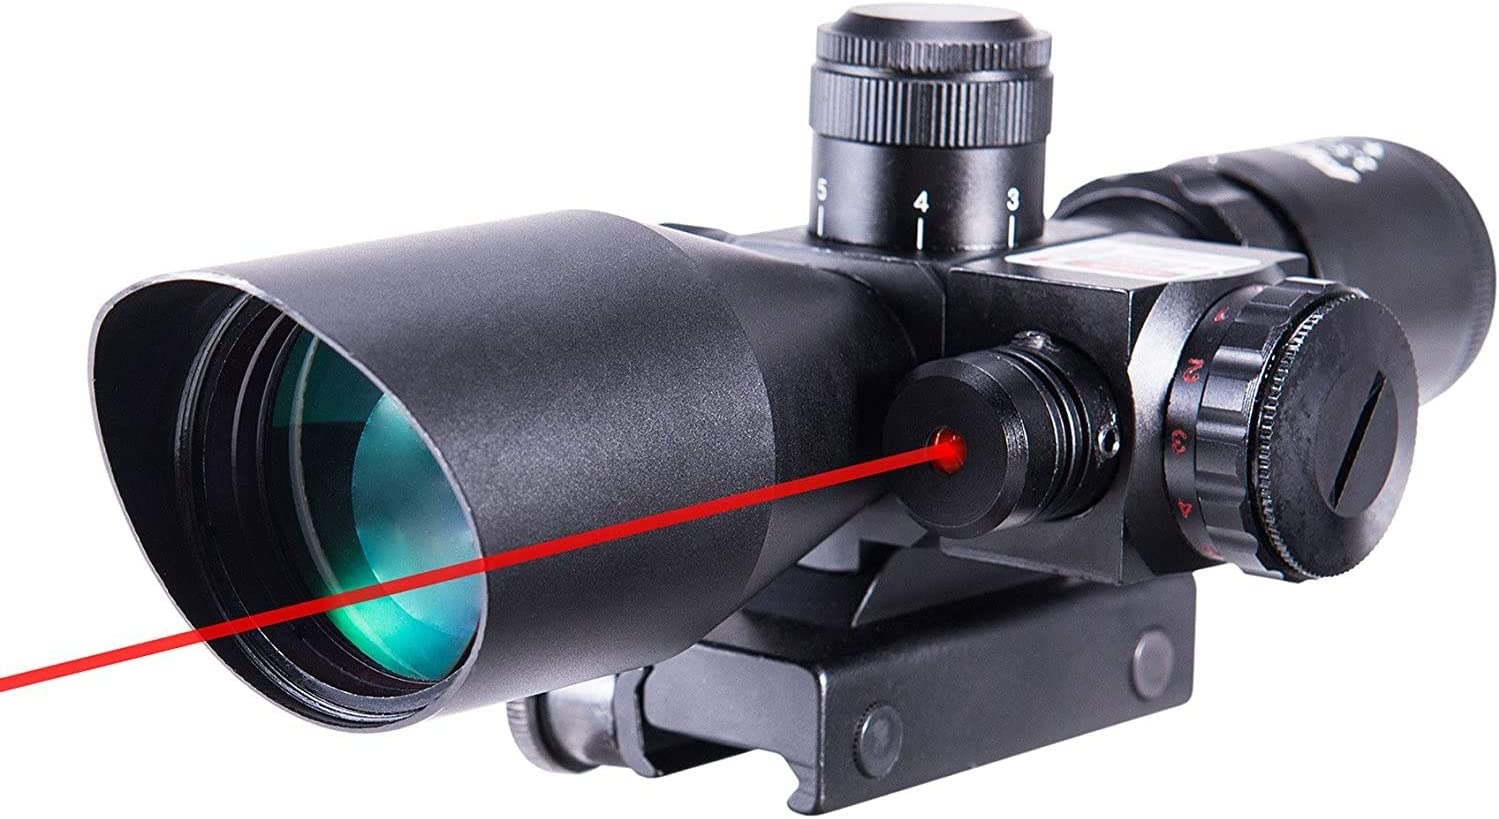 Pinty 2.5 10x40 AOEG Red Green Illuminated Mil dot Tactical Rifle Scope